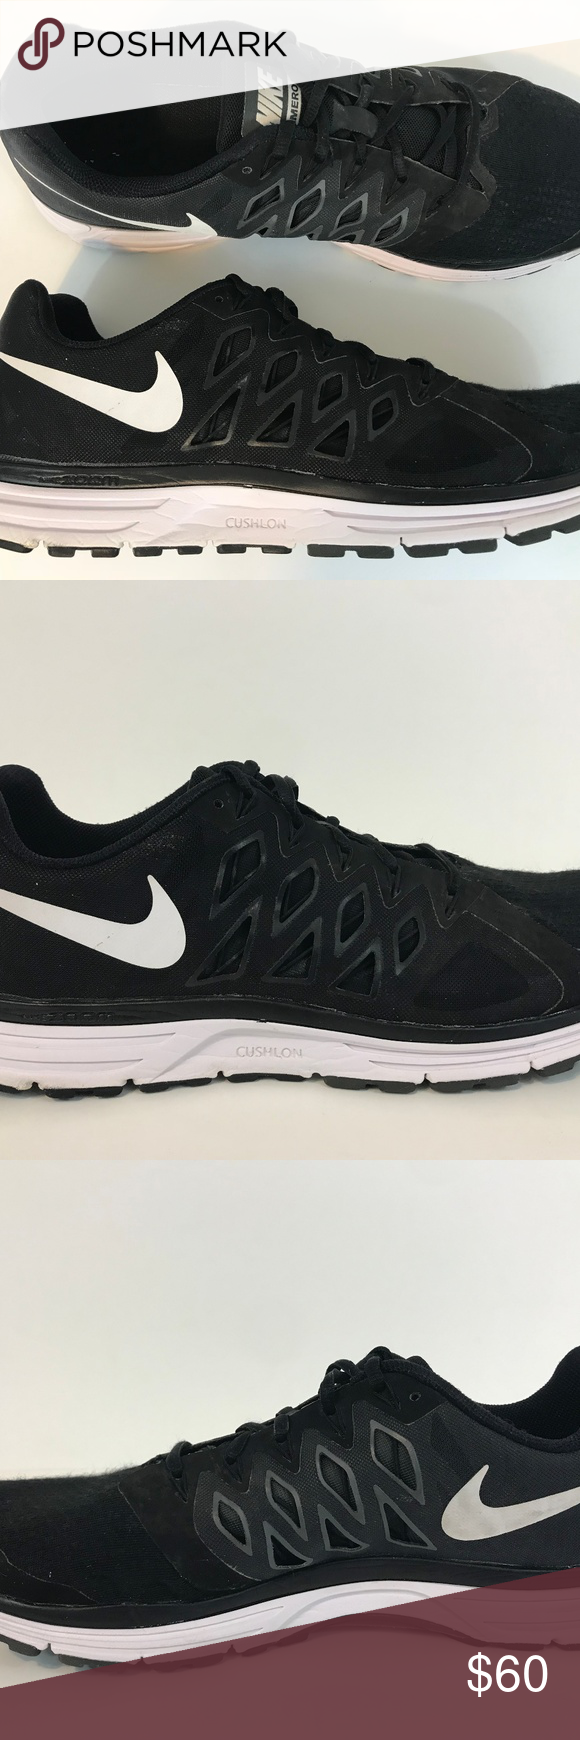 innovative design a9e24 c4ab0 Nike Zoom Vomero 9 Mens Running Shoe Size 14 Excellent condition. Nike Shoes  Athletic Shoes